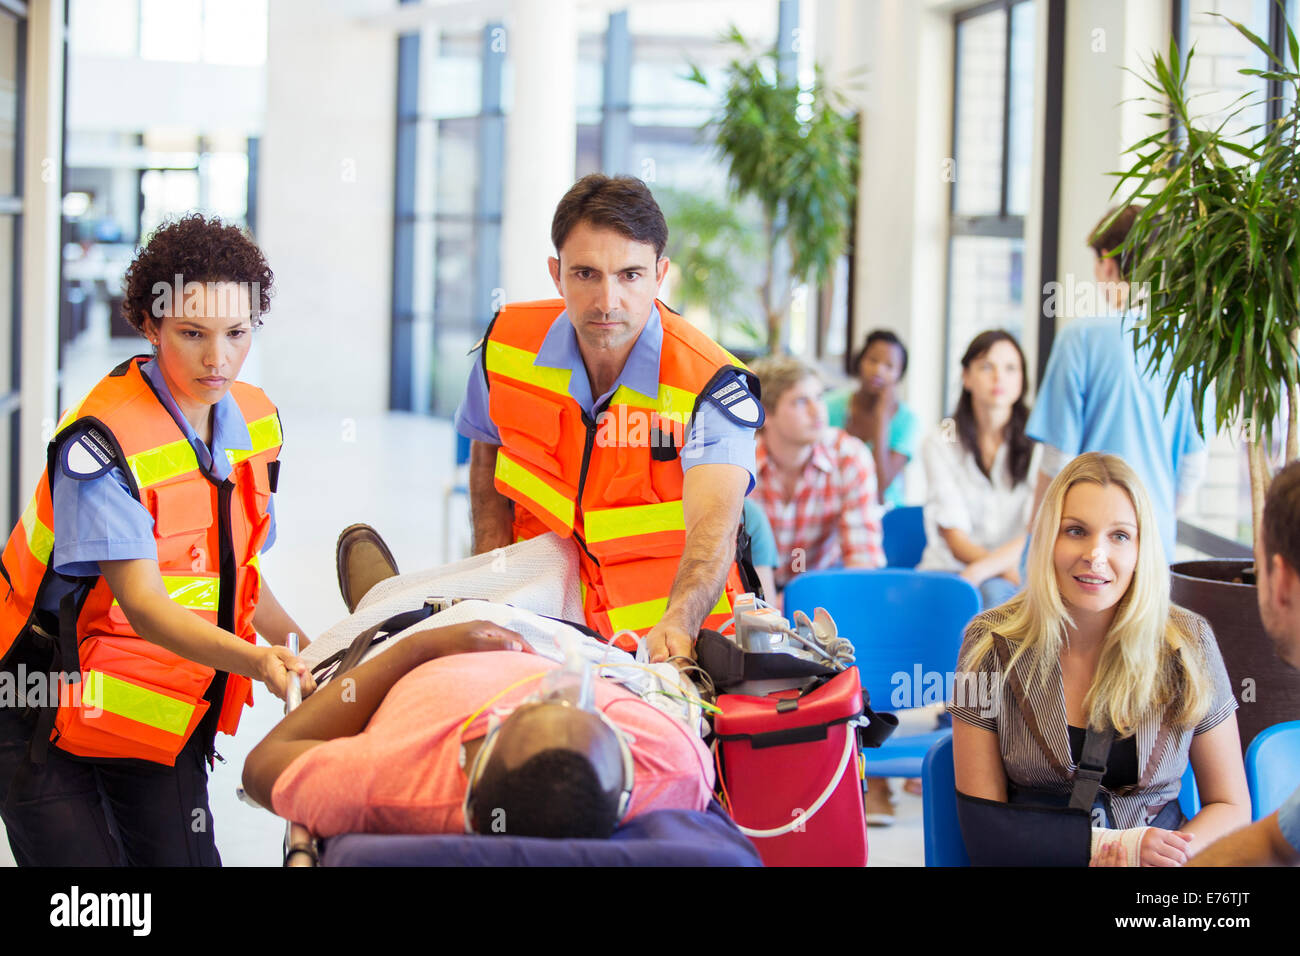 Paramedics wheeling patient in hospital - Stock Image